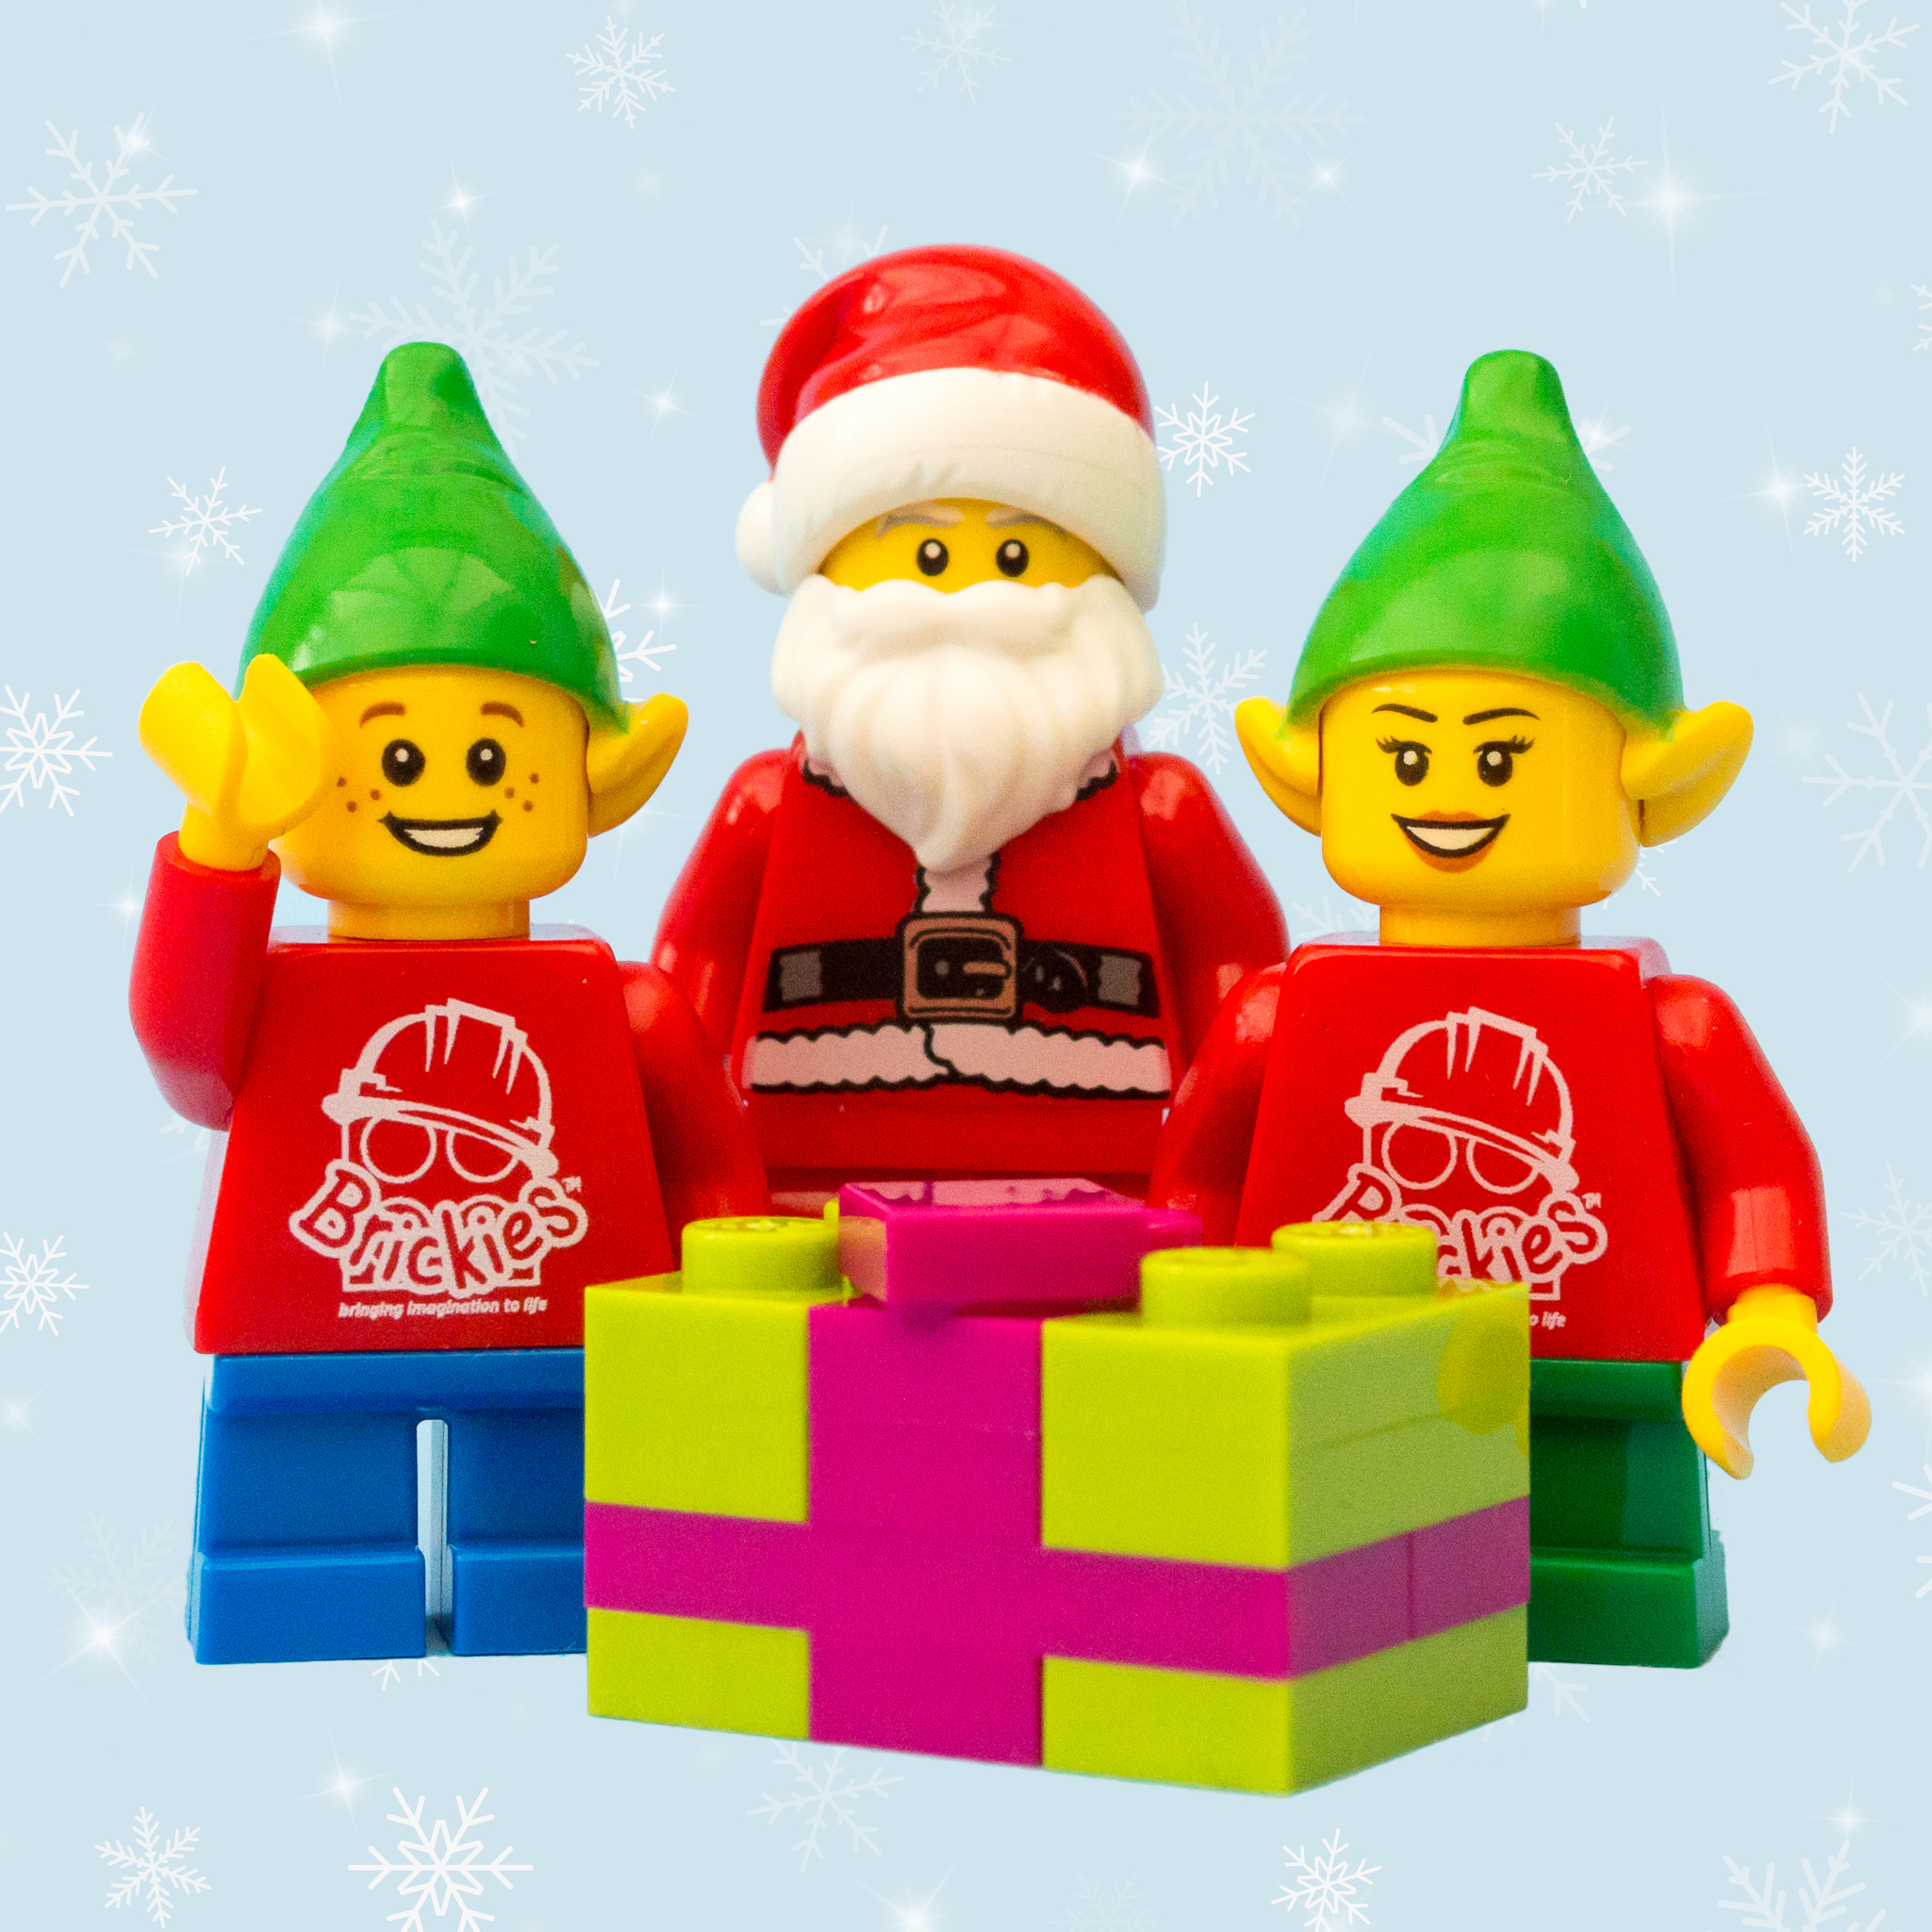 Christmas Cracker Toys.Staines A Christmas Cracker Lego Workshop 22 12 18 2 30pm 4 30pm